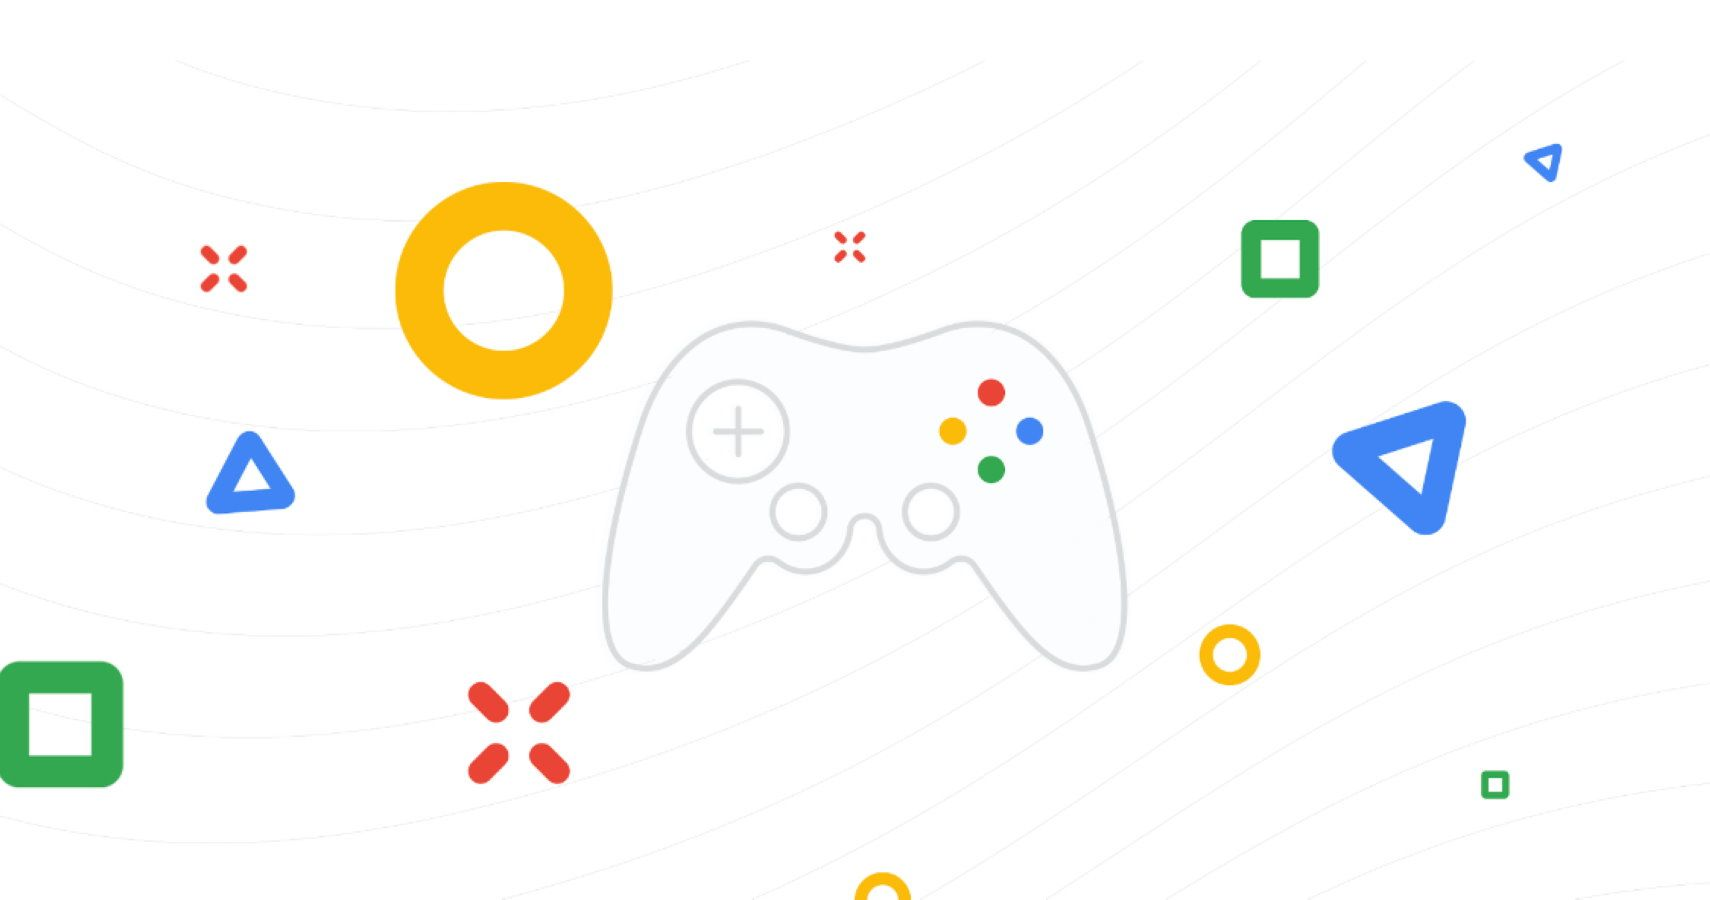 Google, 2K Games Launch Free-To-Use Open Source Cloud Game Save System